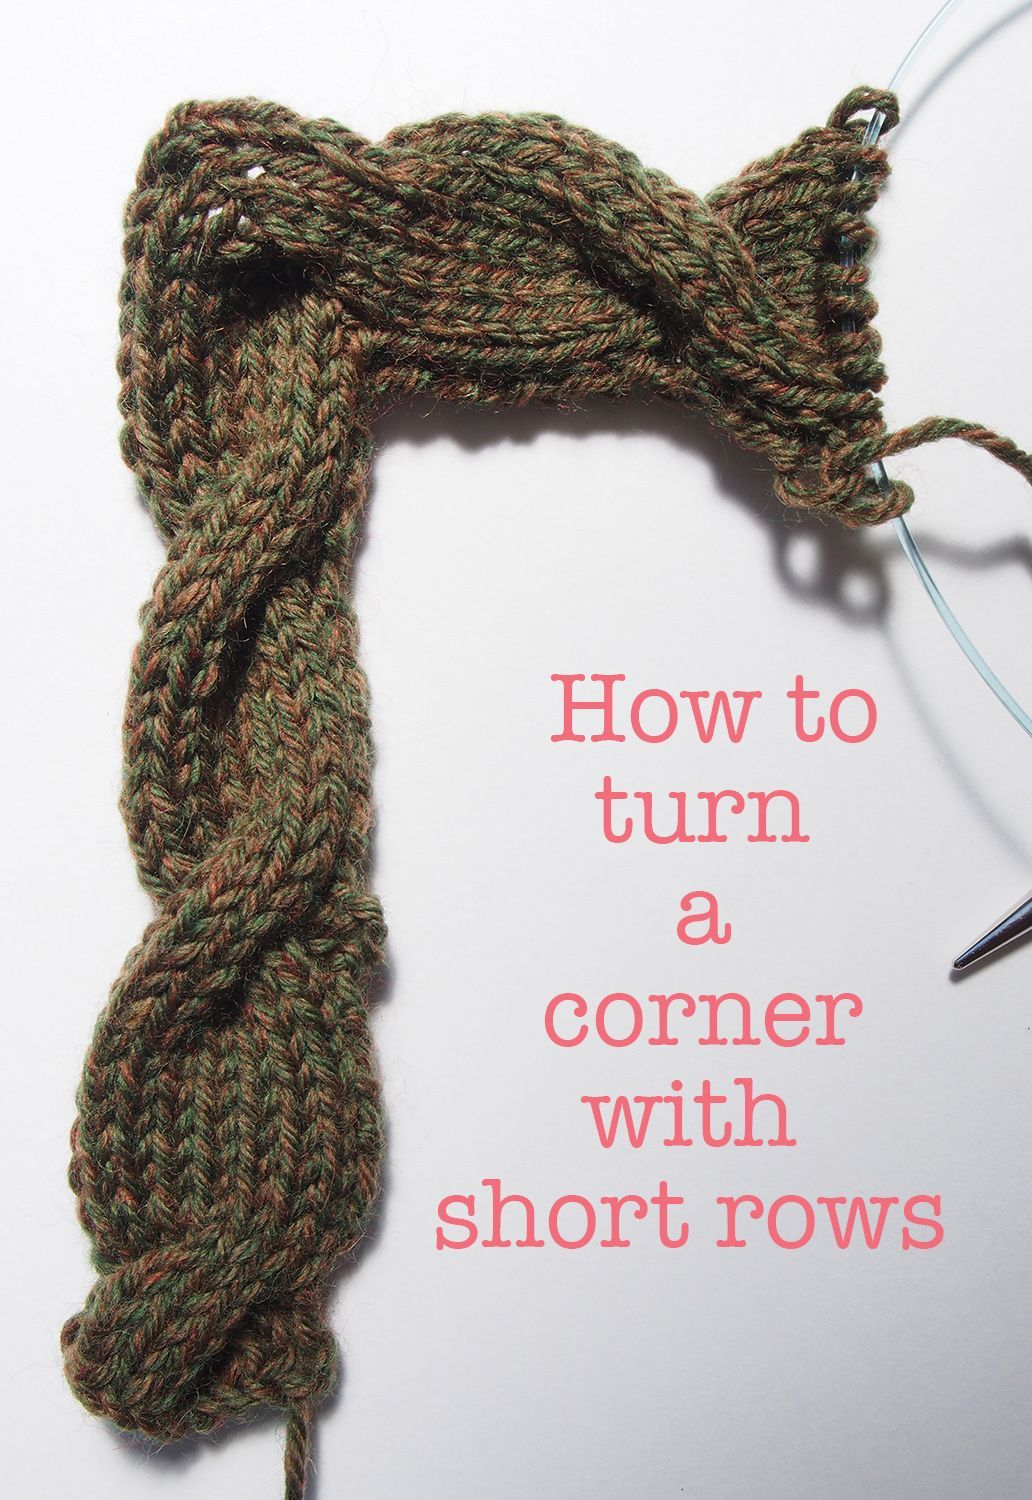 Need A Corner In A Blanket Trim Or Any Other Knit Try It